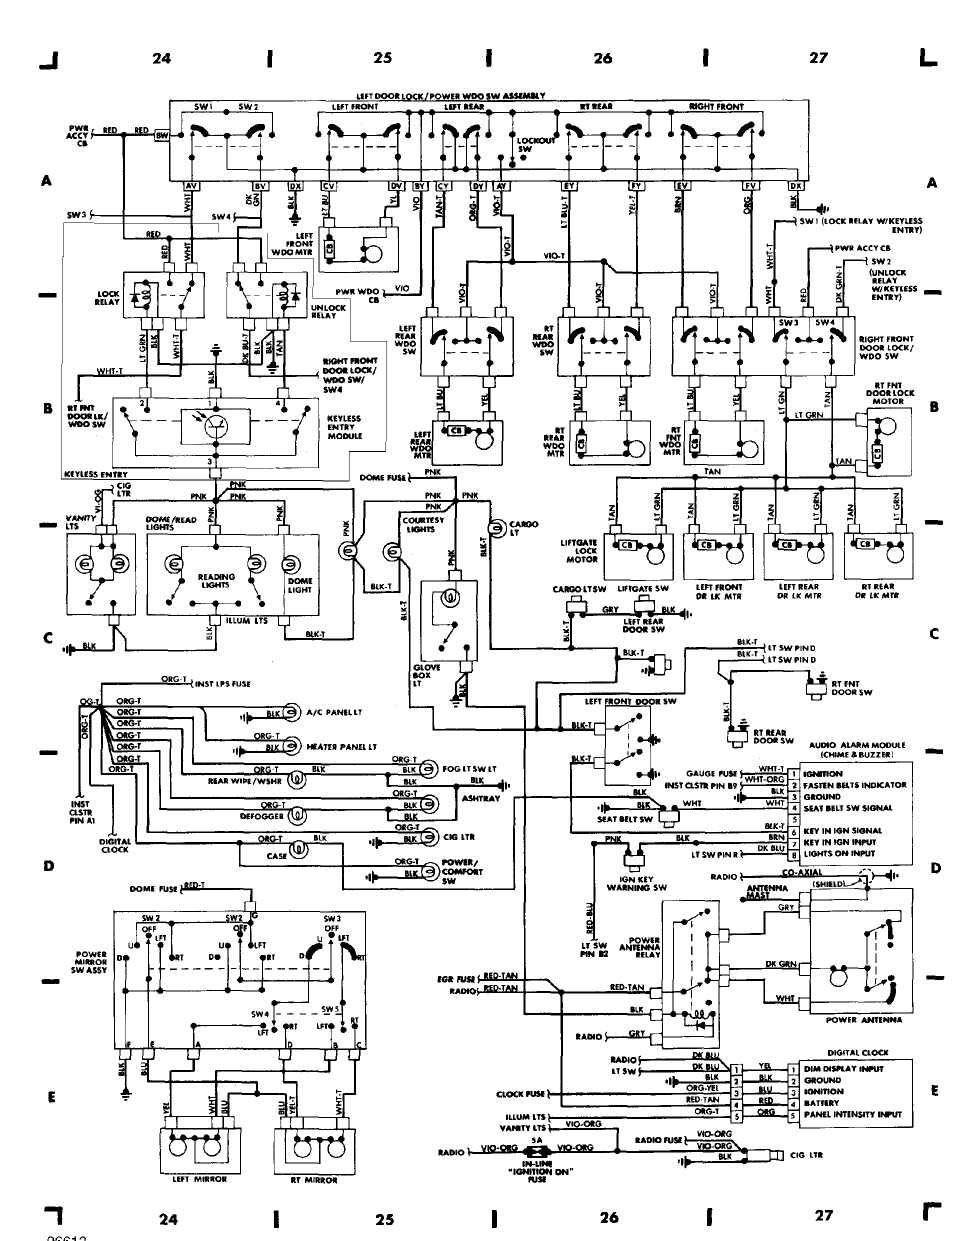 wiring_diagrams_html_61f5e0ad wiring diagrams 1984 1991 jeep cherokee (xj) jeep 1995 Jeep Cherokee Parts Diagram at alyssarenee.co